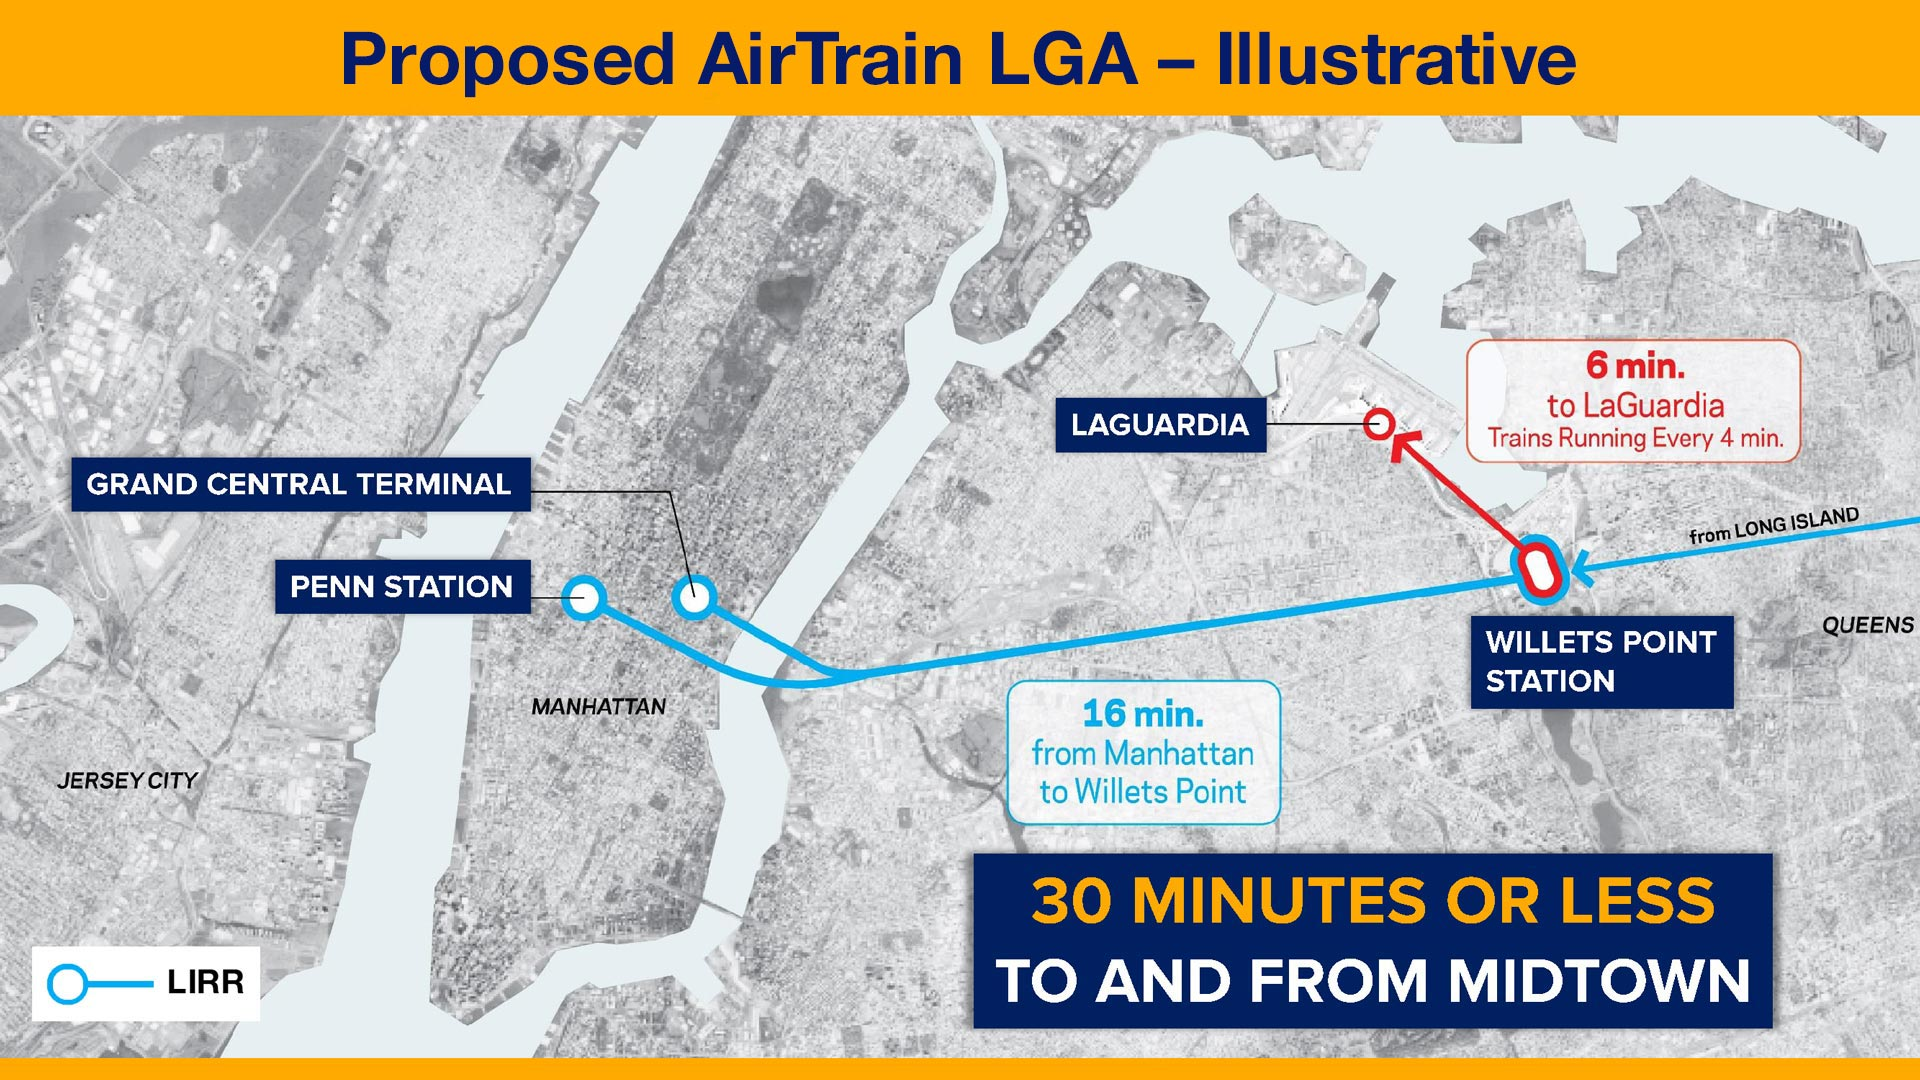 Laguardia Subway Map.Airtrain Lga Laguardia Redevelopment